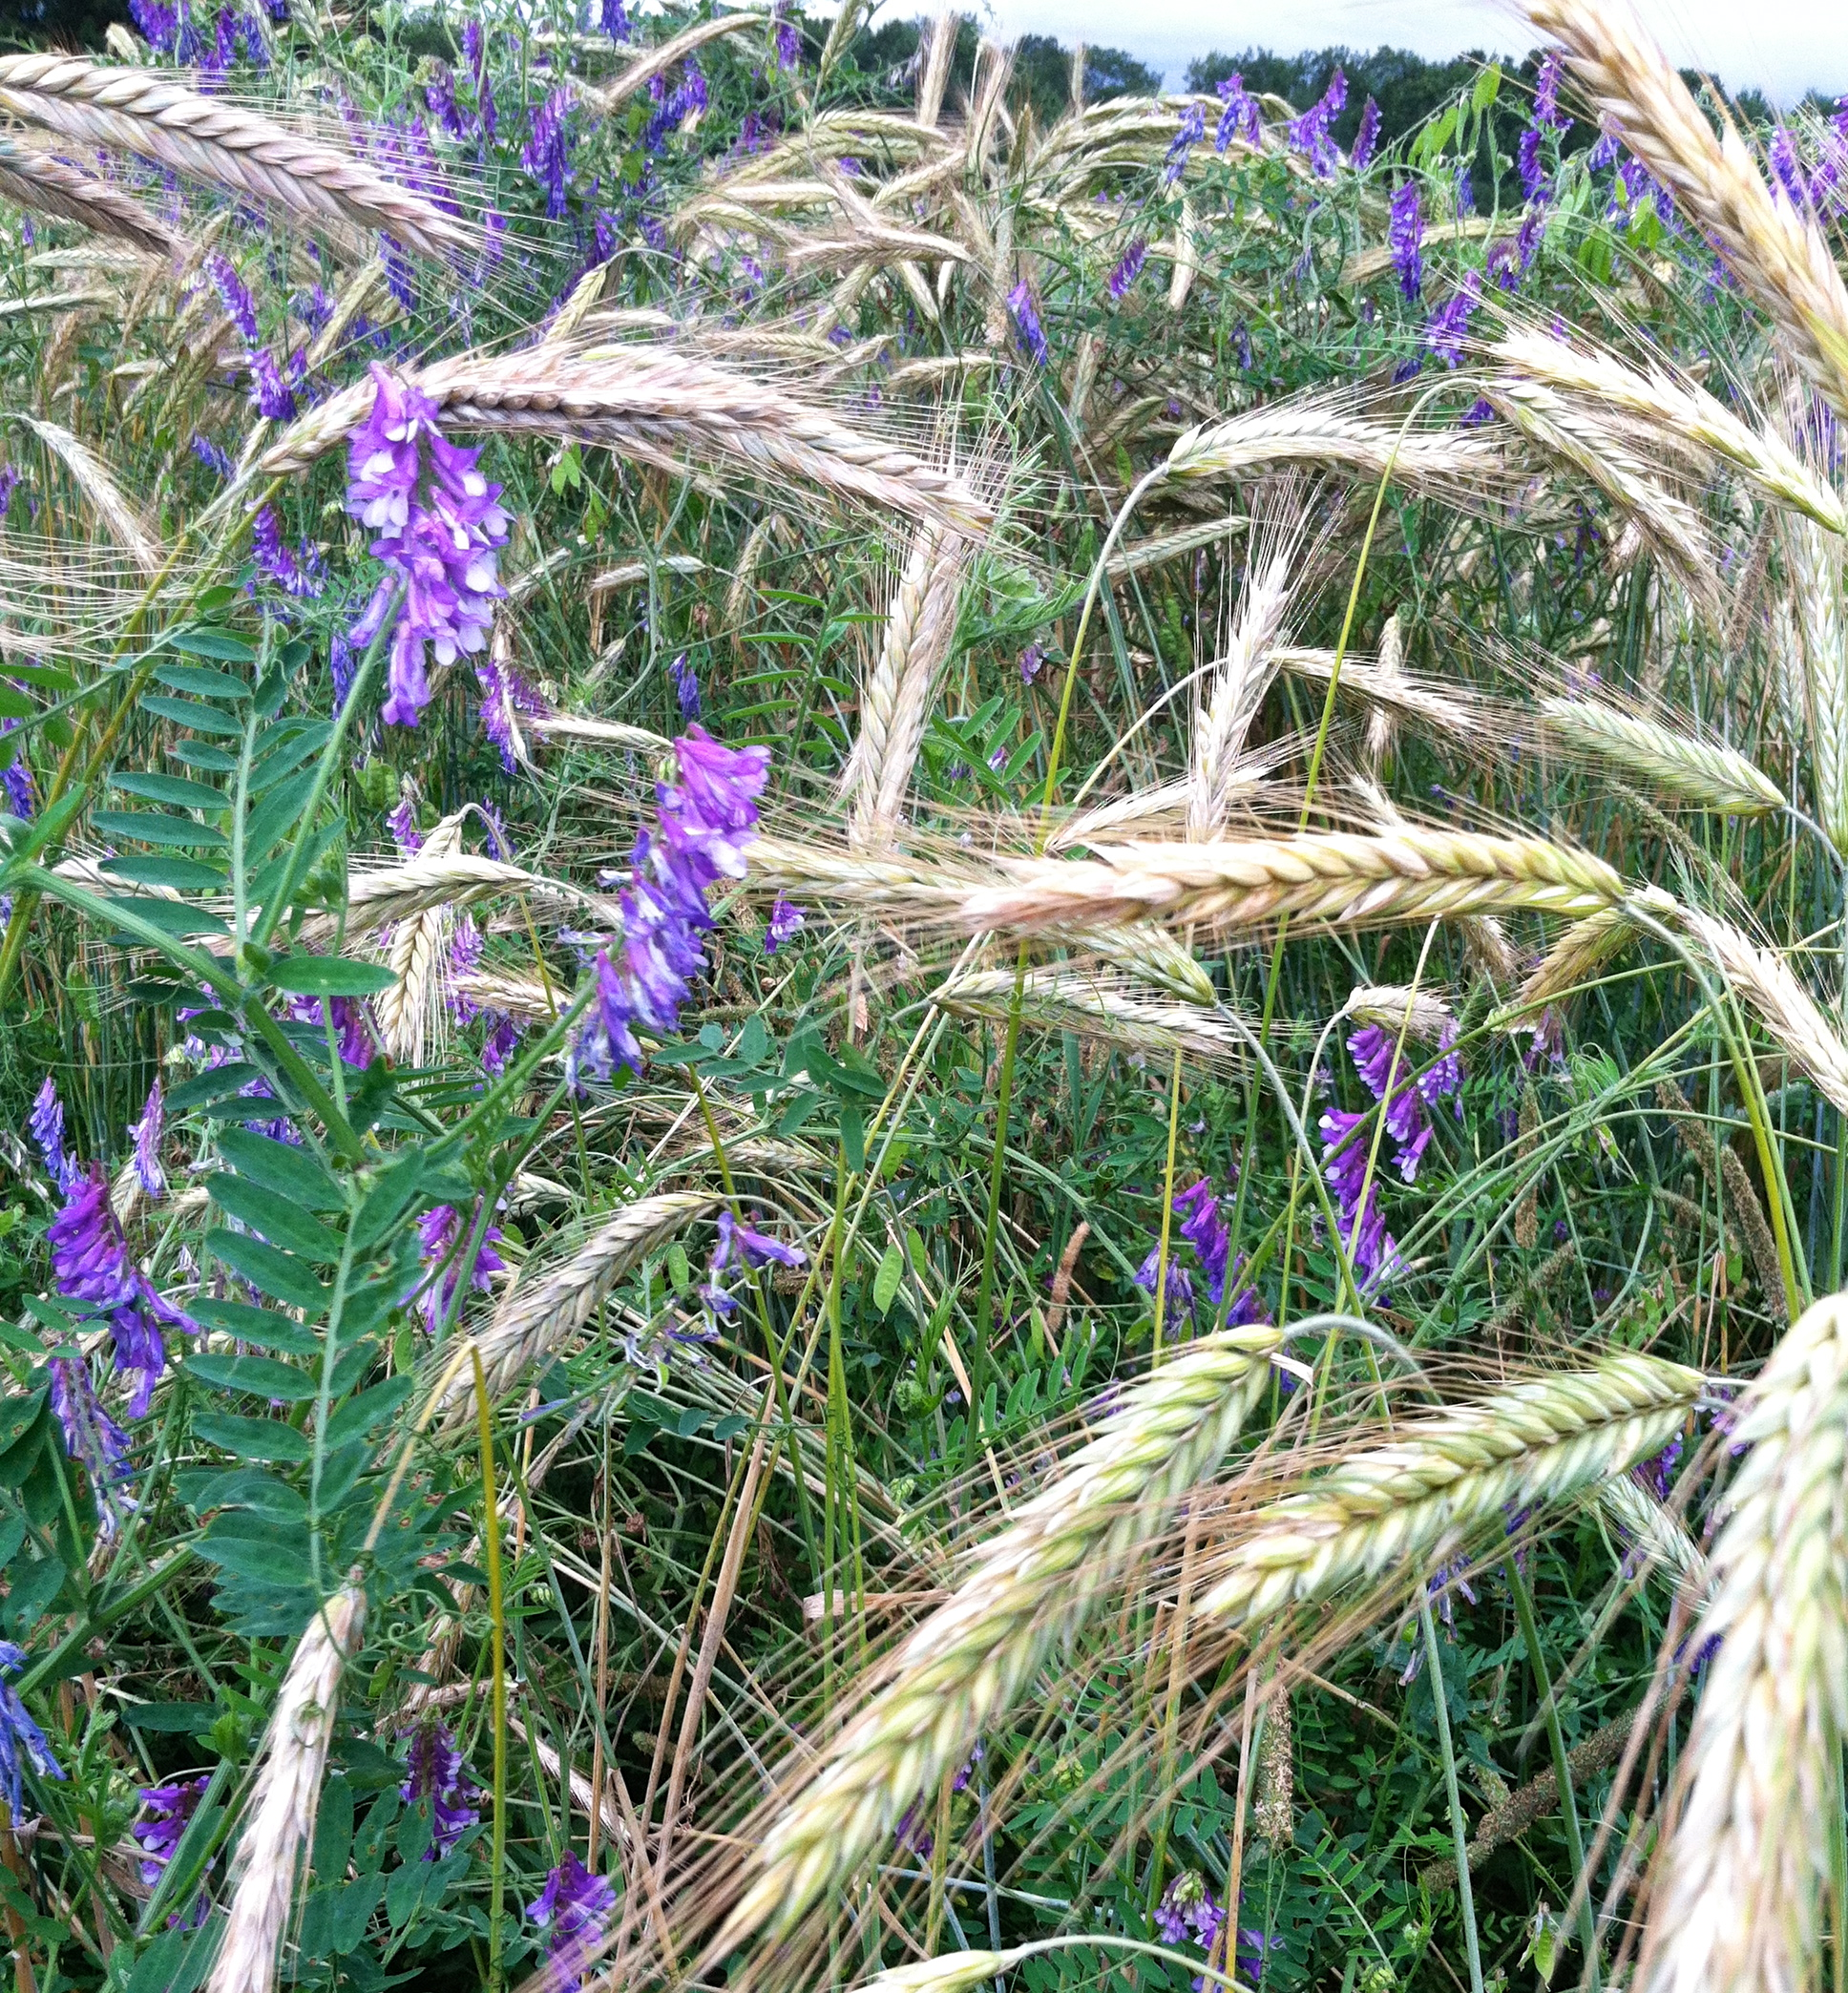 The rye and vetch get me every time. Those colors.